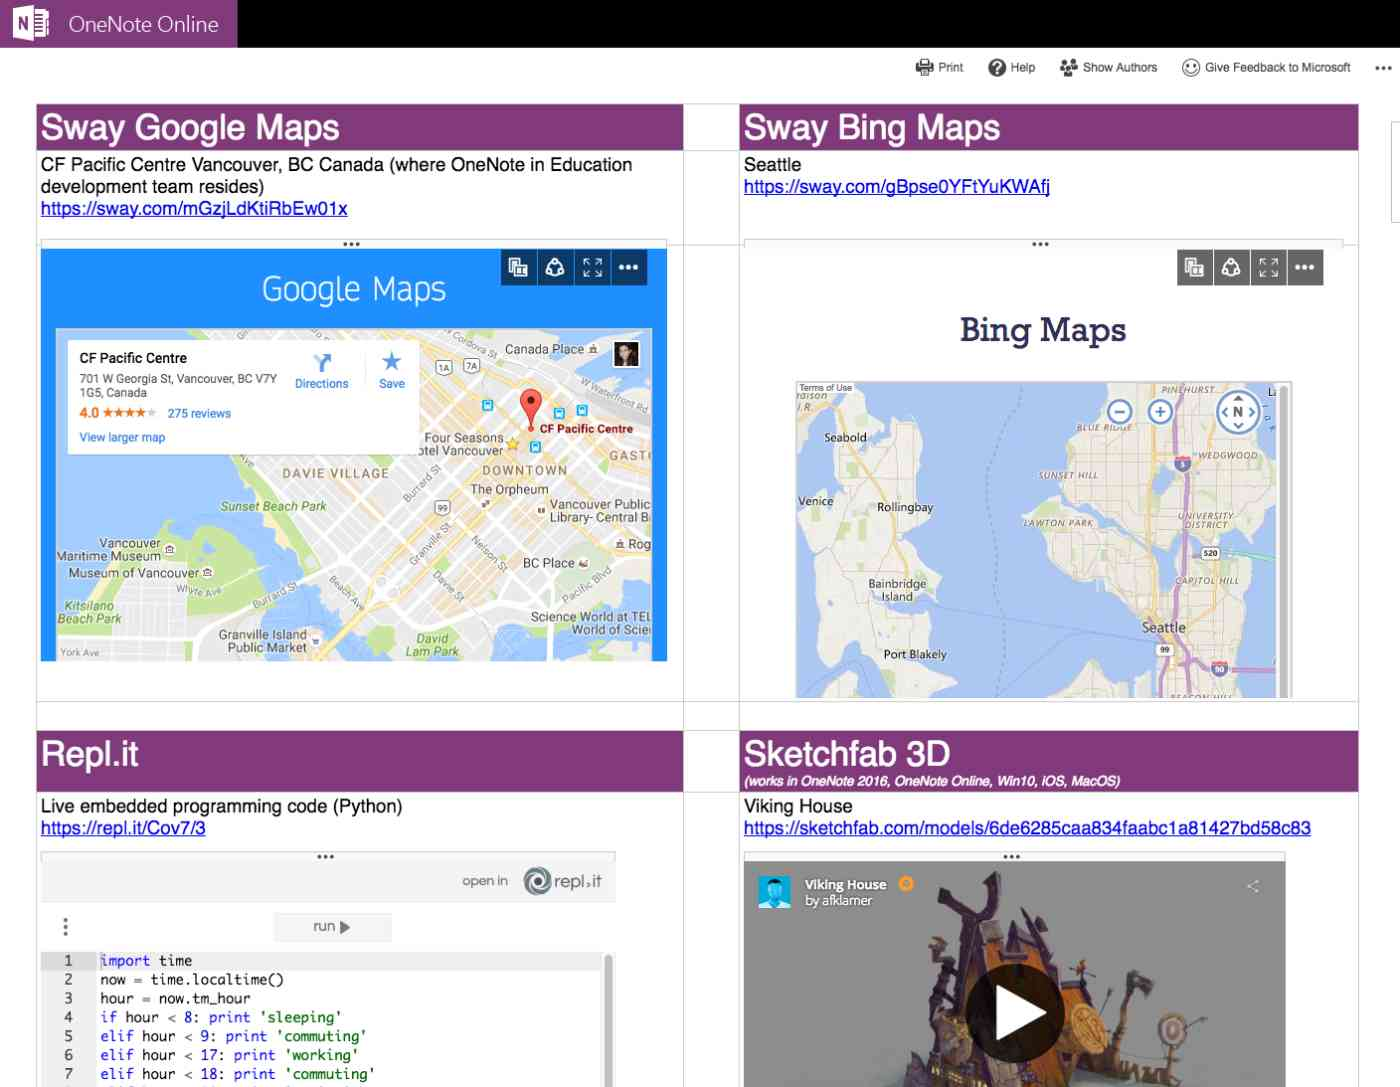 OneNote Tutorial: OneNote live objects